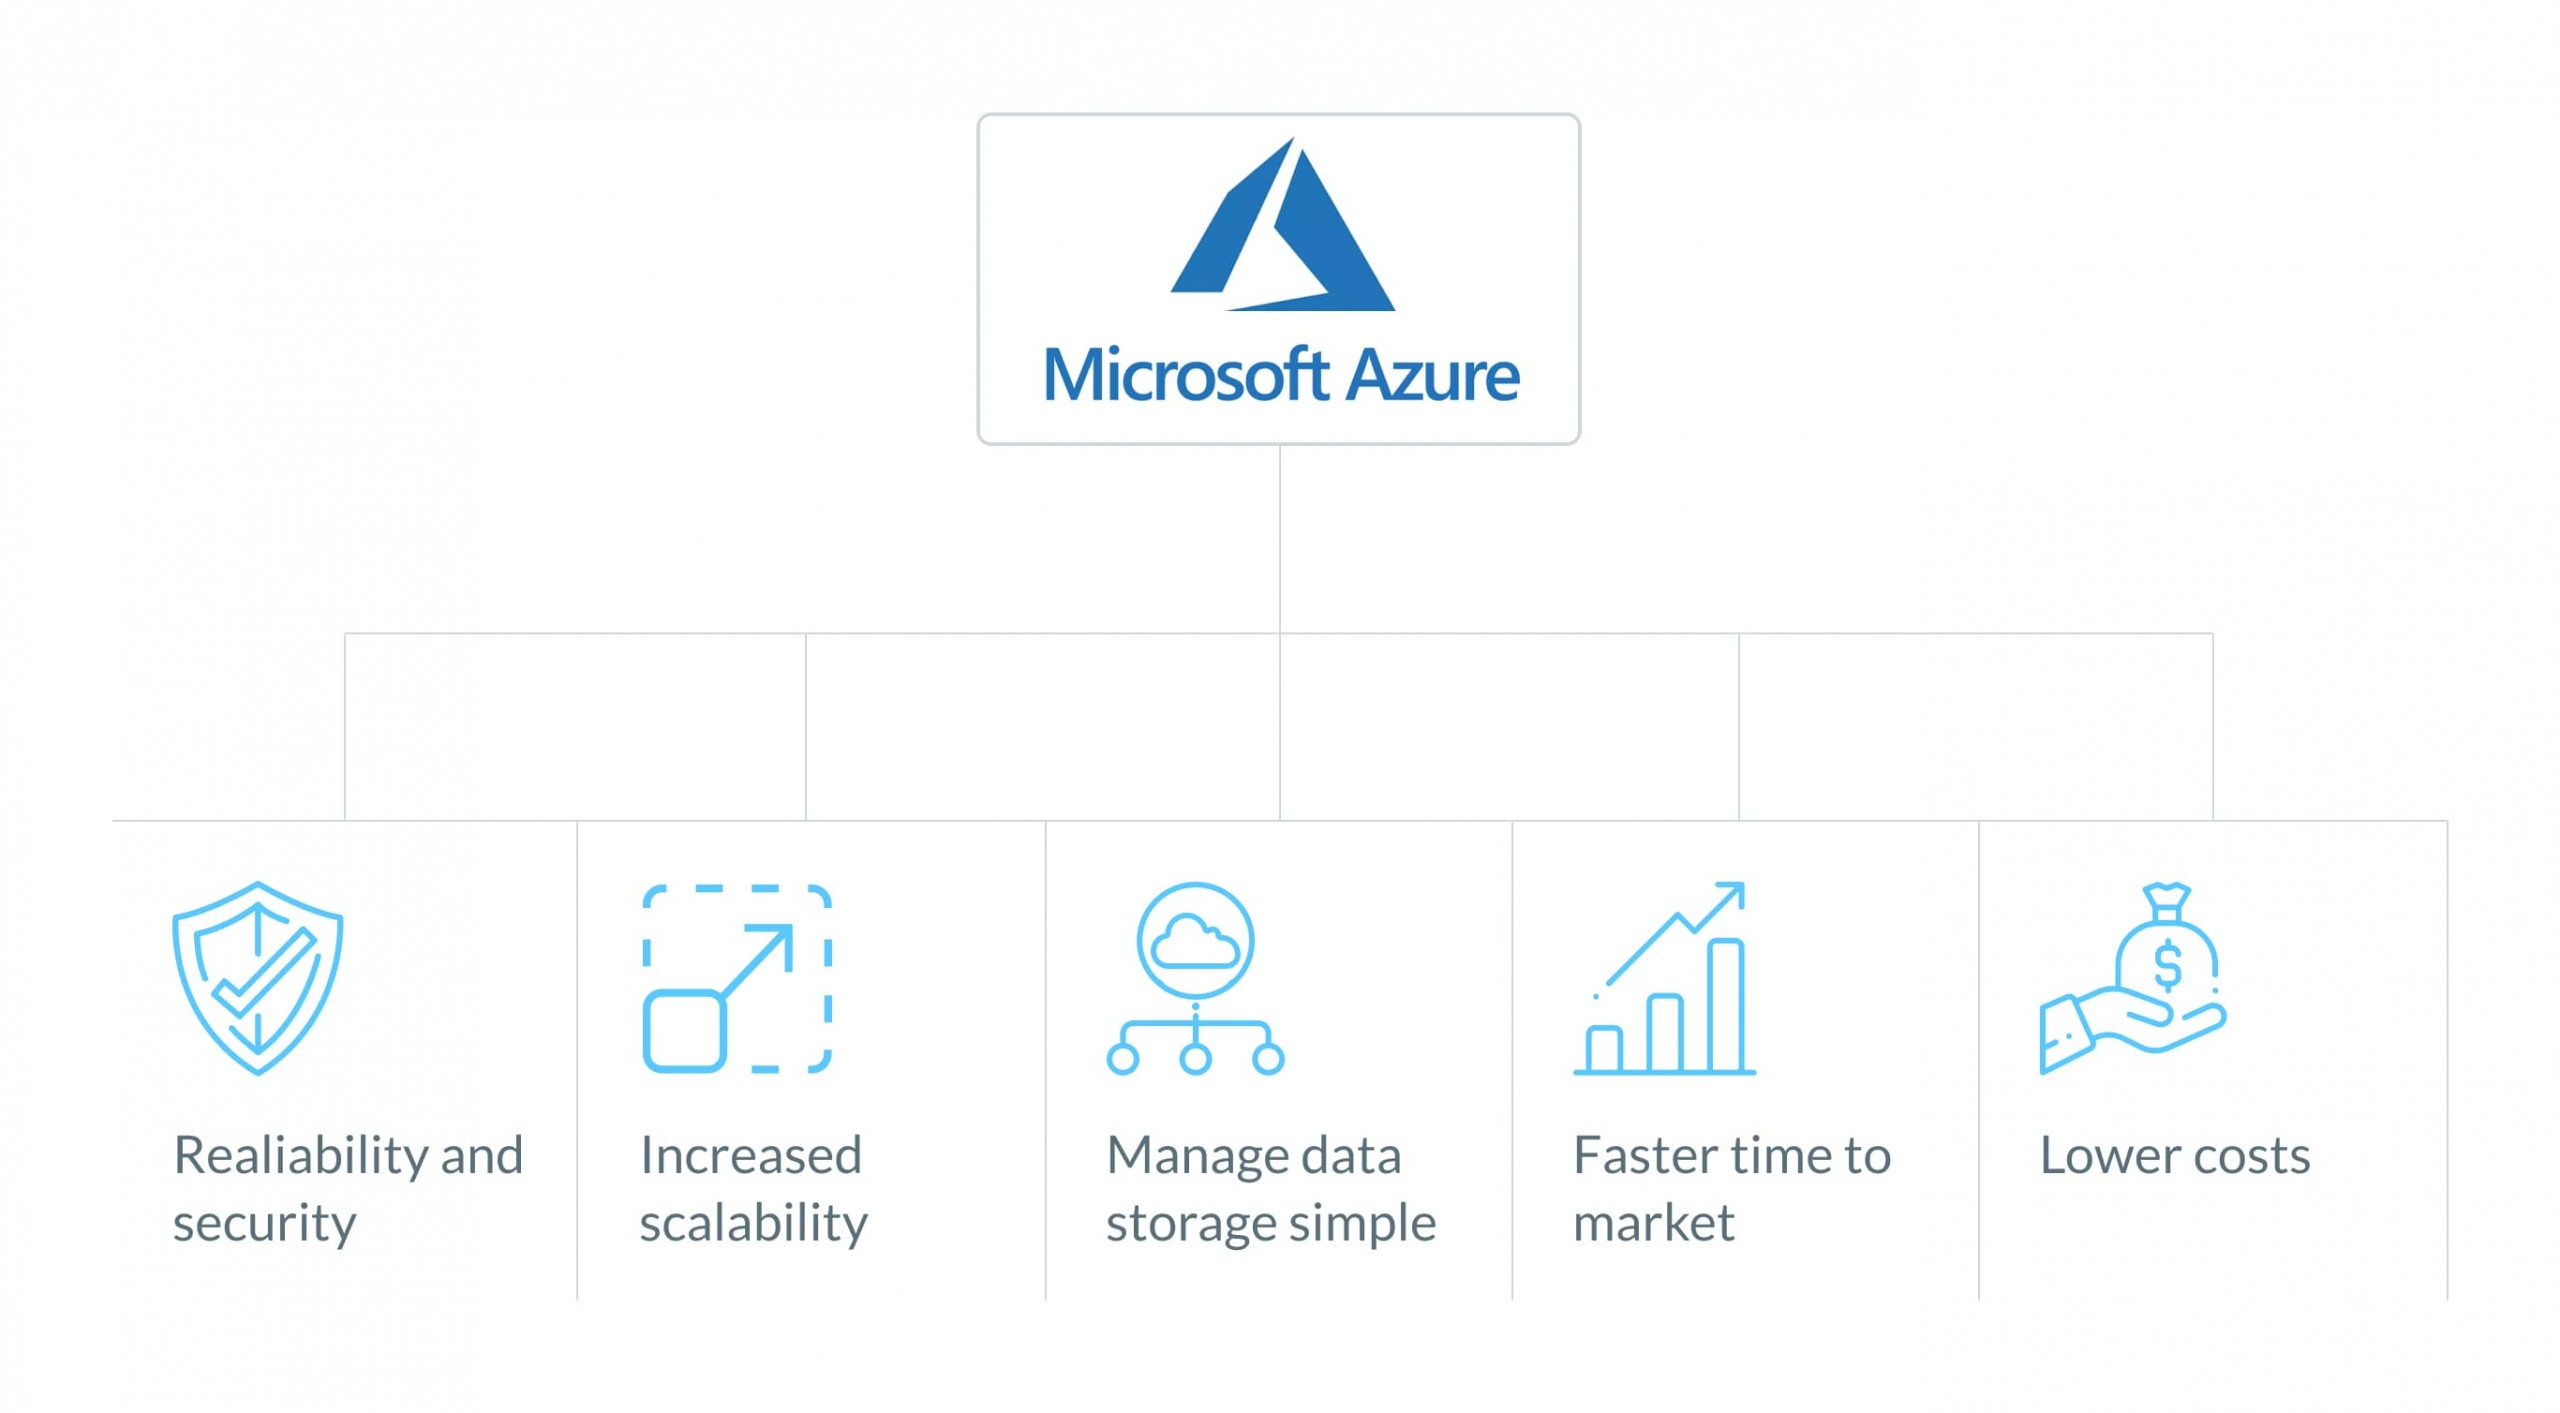 What is Azure cloud service?